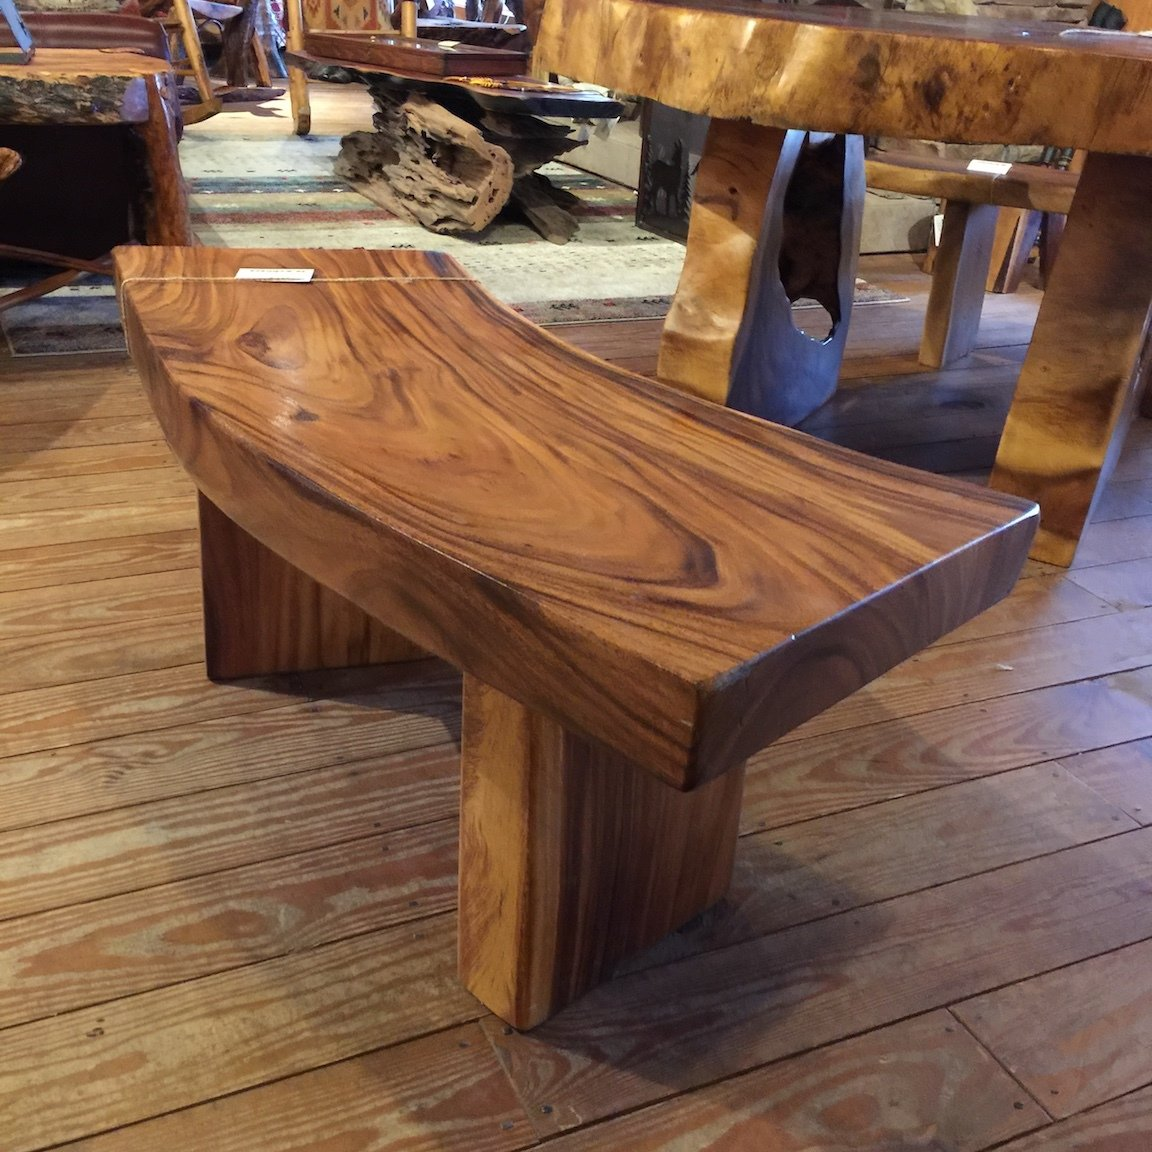 Monkey Pod Curved Bench 4'